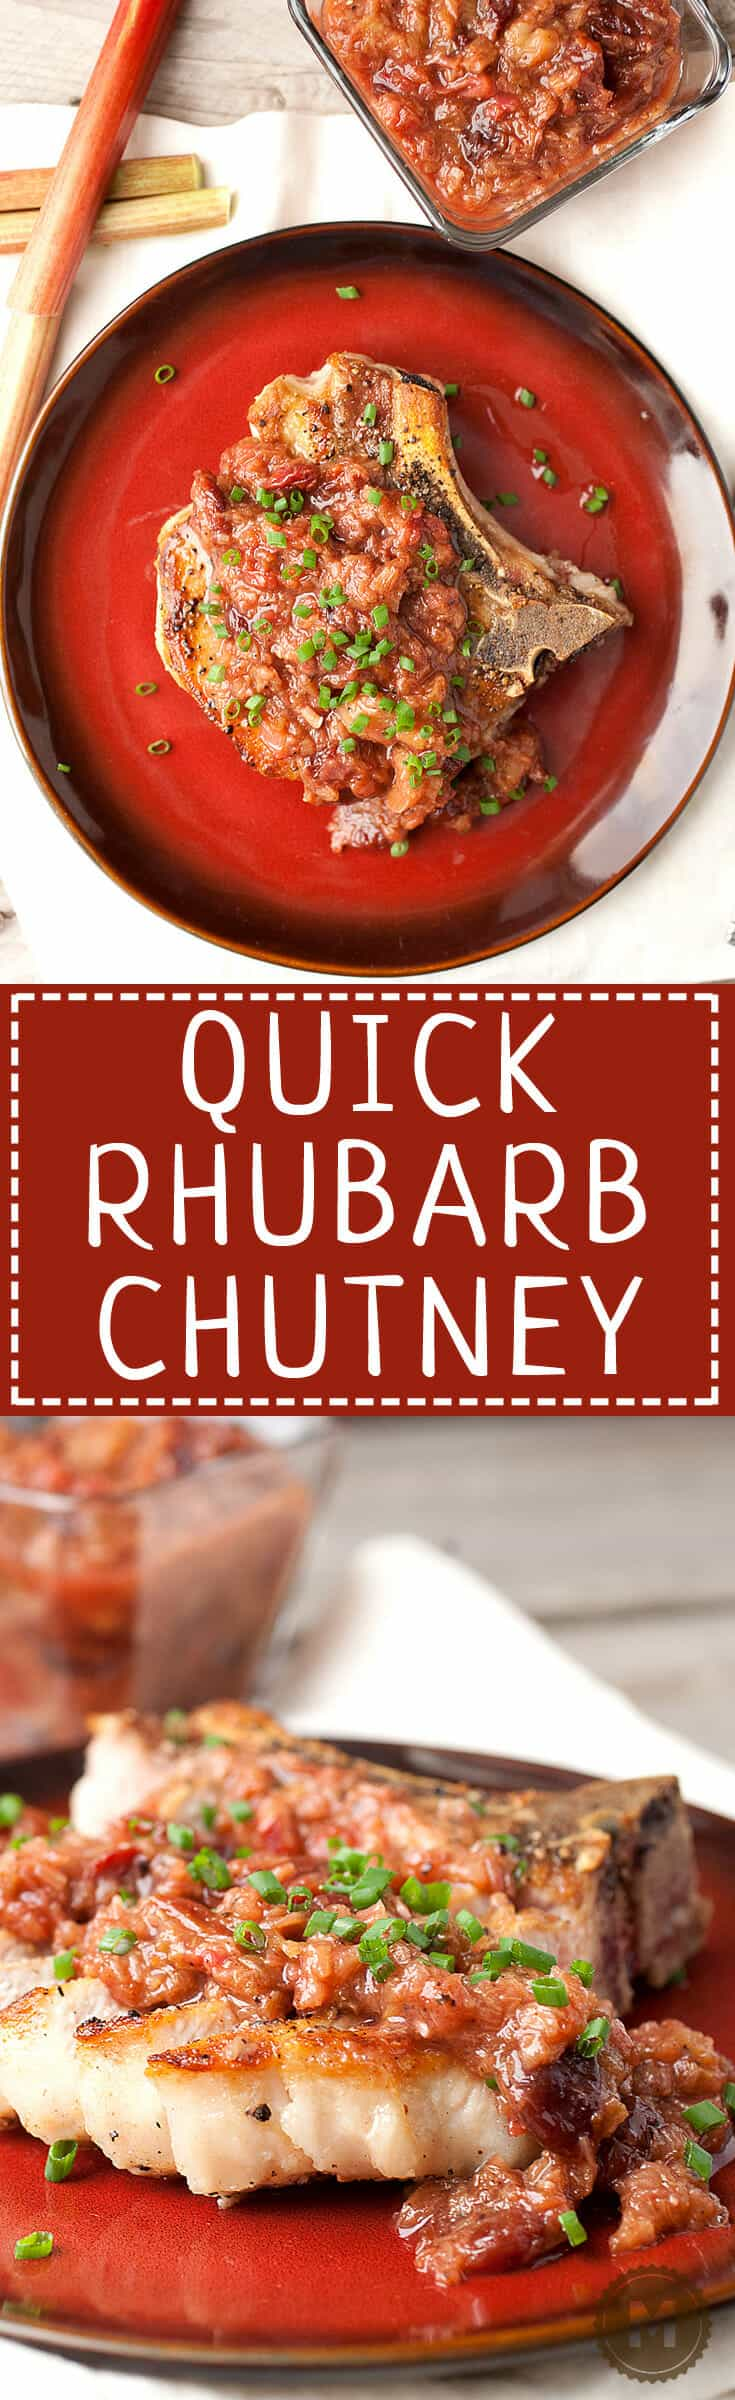 Quick Rhubarb Chutney: A perfect savory use for in-season rhubarb. Sweet and tangy and perfect over any grilled meat. Make some this summer! | macheesmo.com